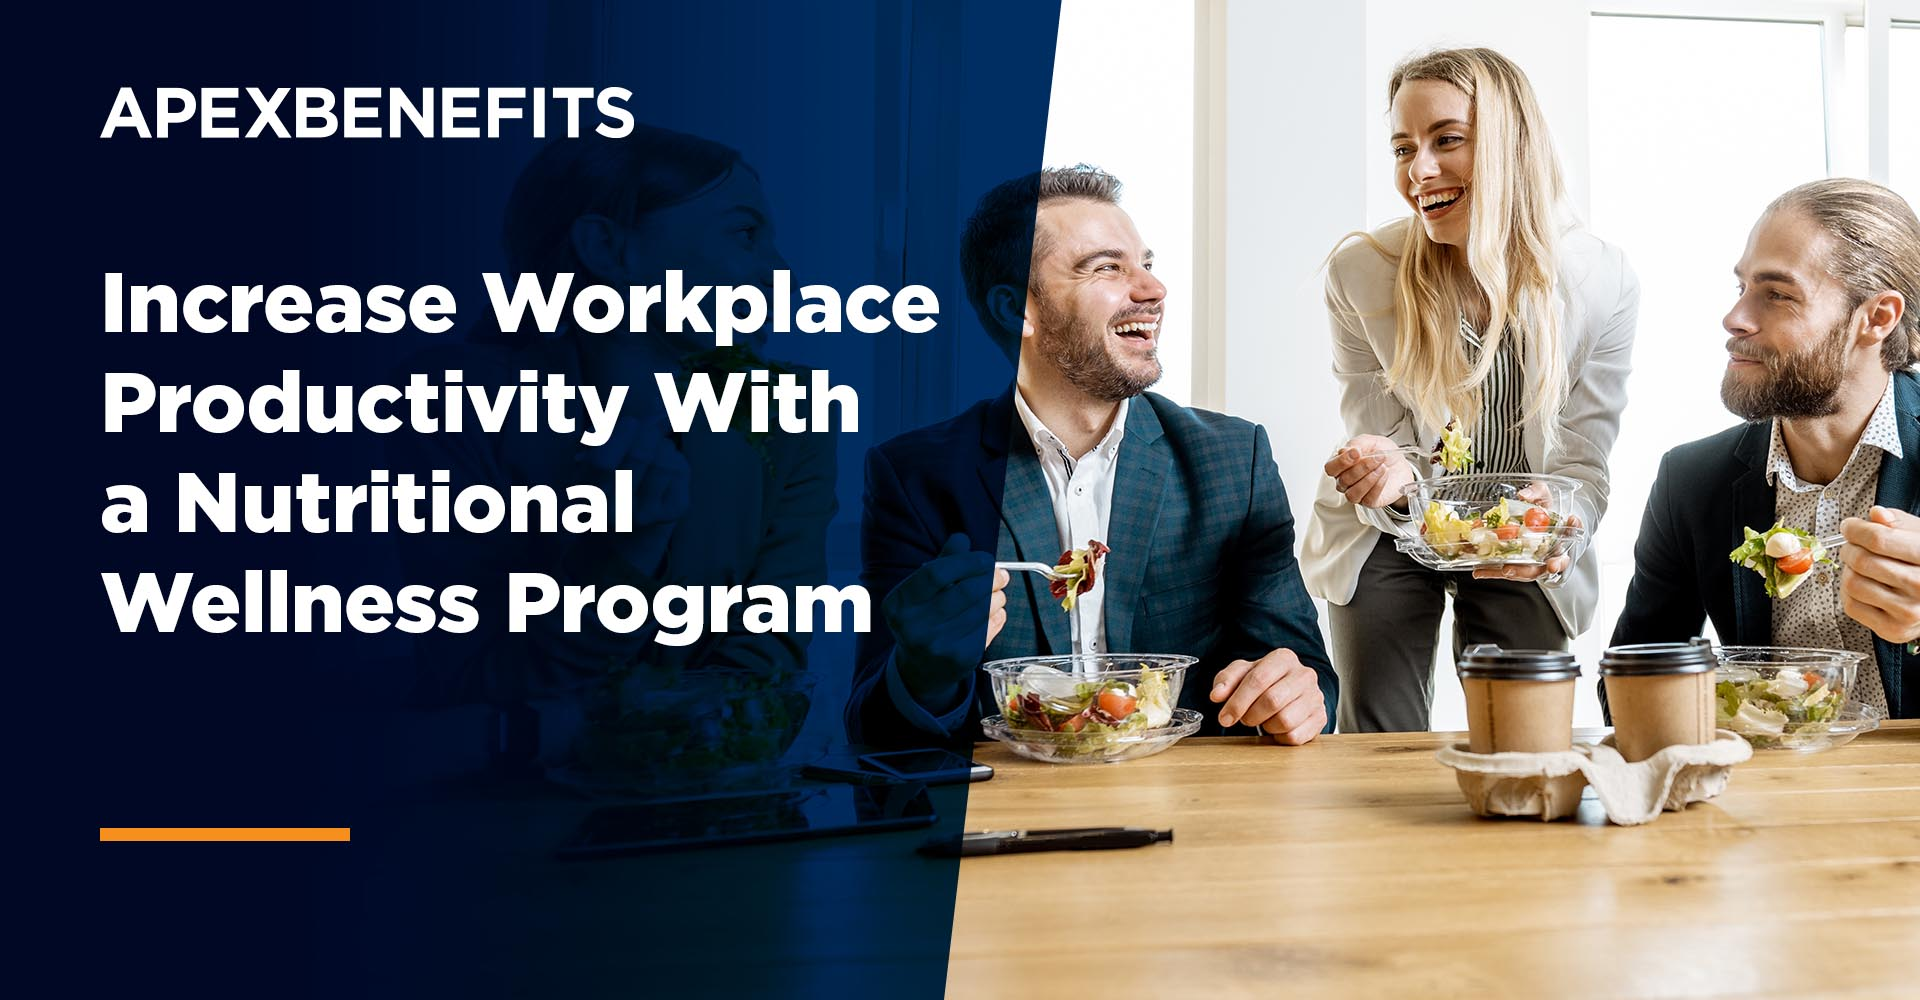 Increase Workplace Productivity With a Nutritional Wellness Program